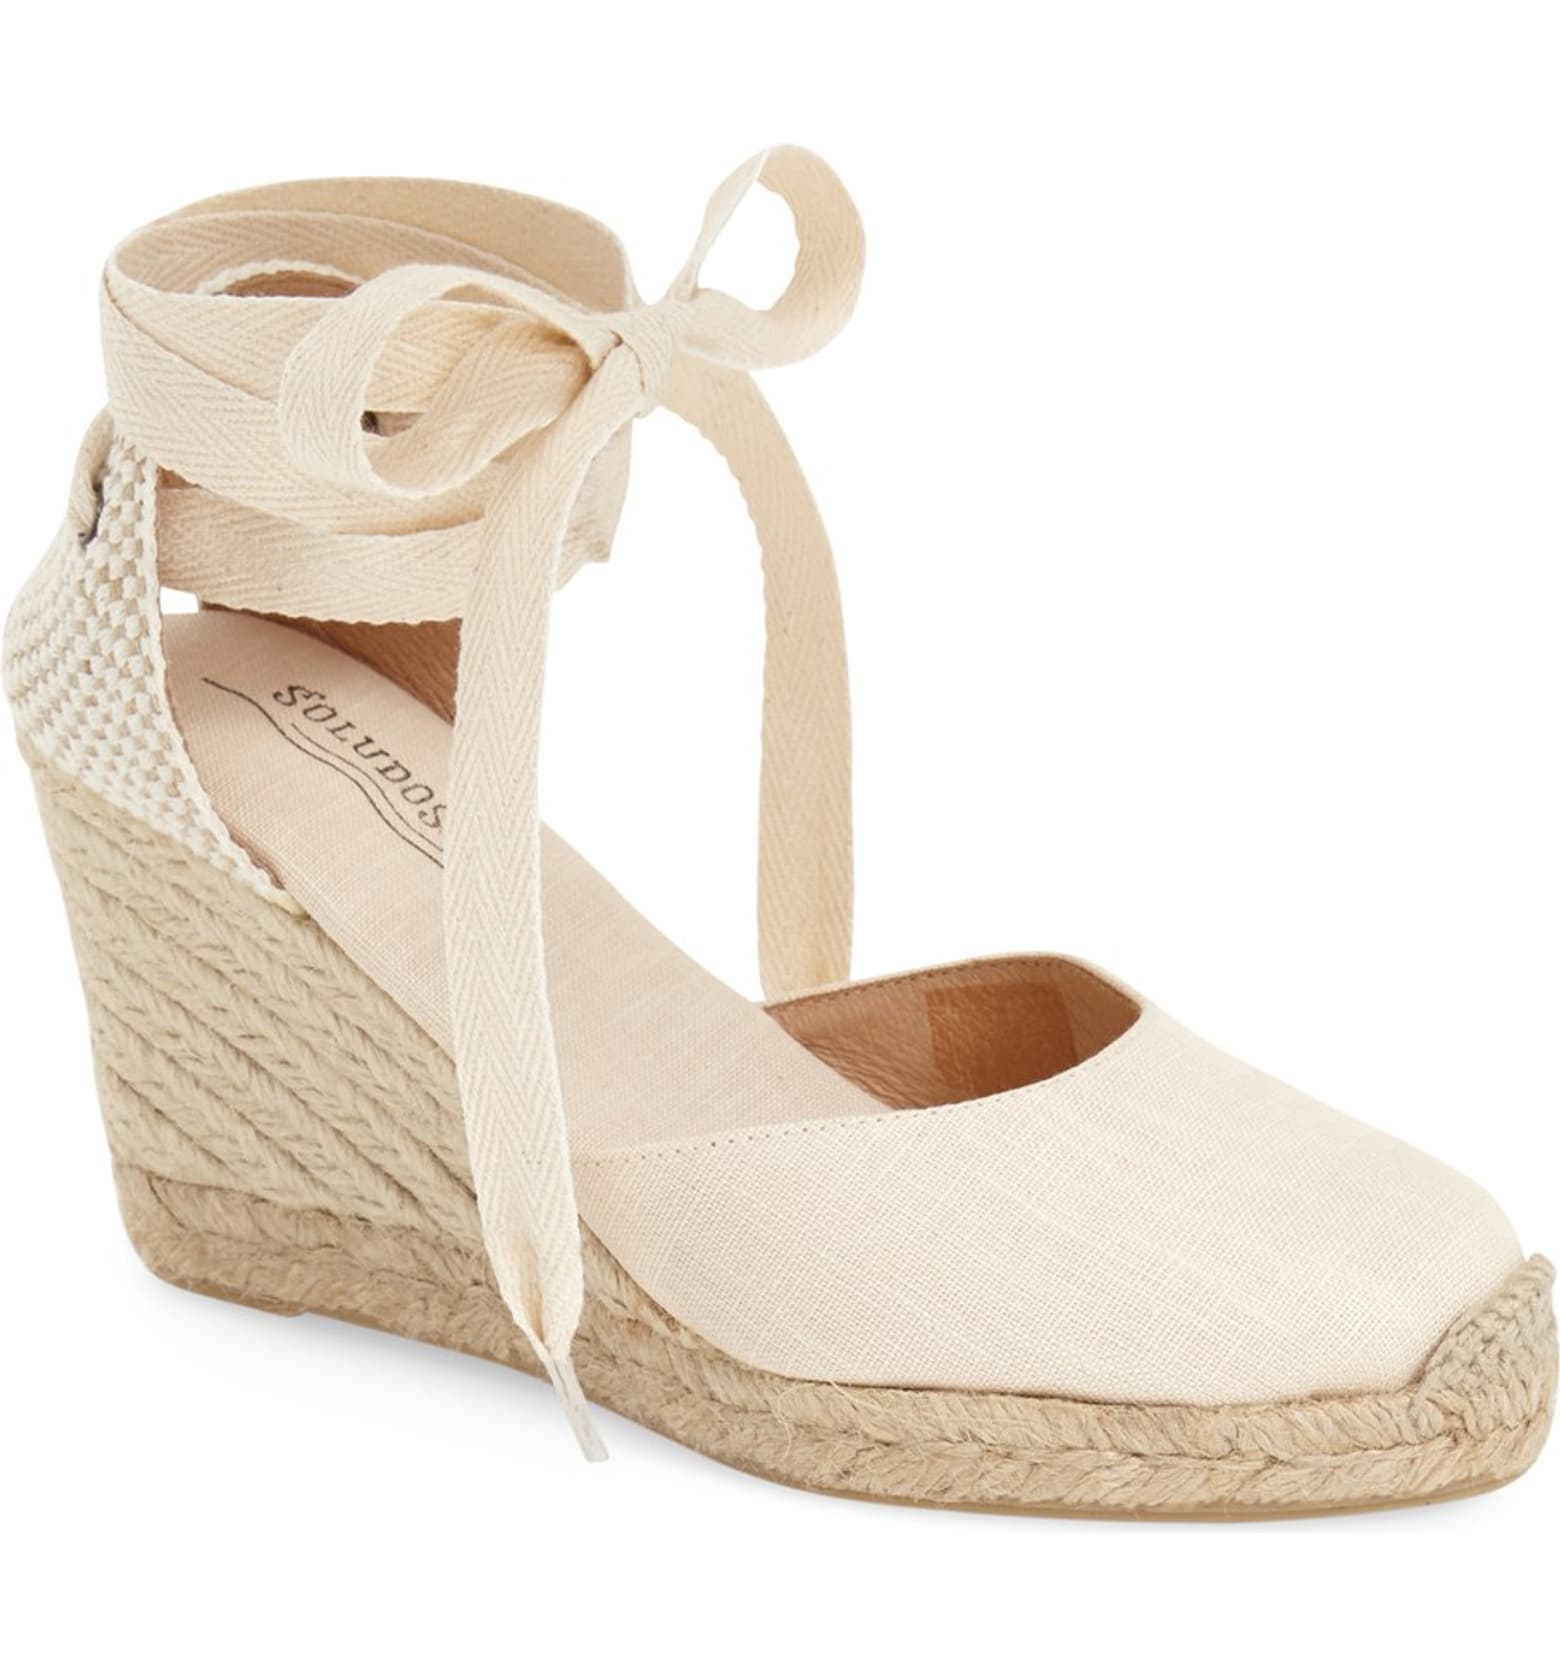 Nordstrom shoes, verano